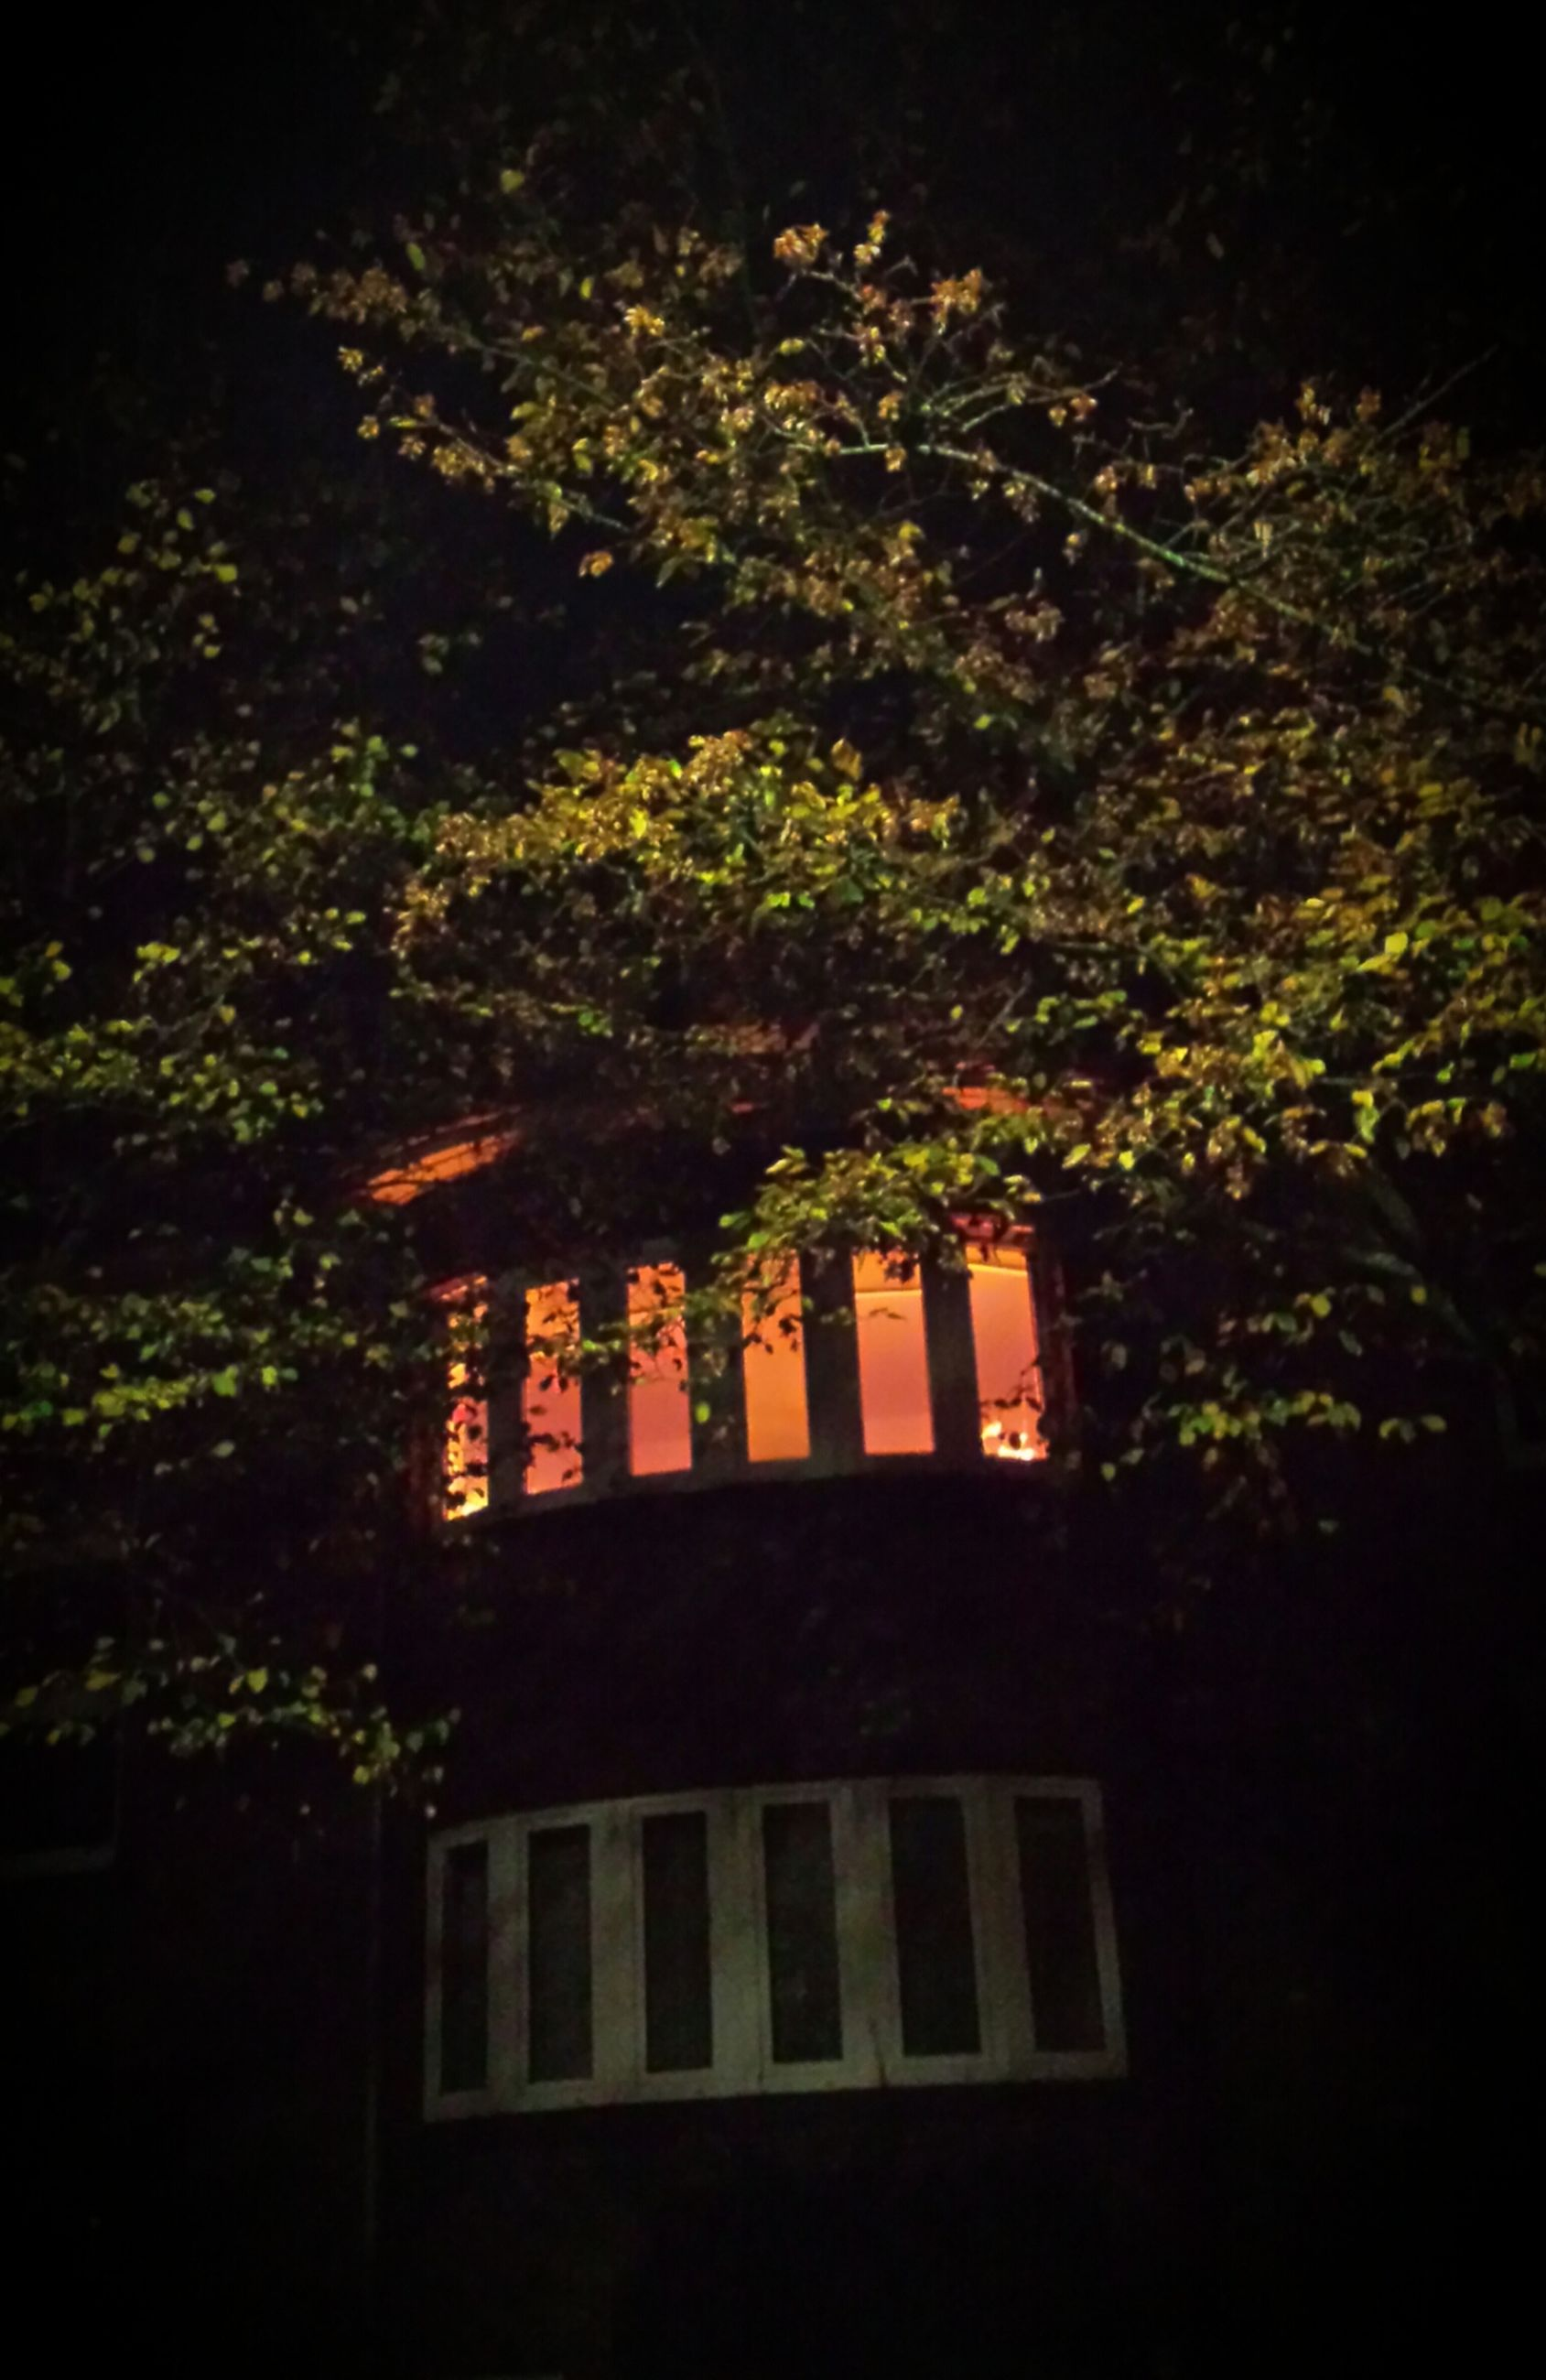 architecture, building exterior, built structure, tree, growth, house, low angle view, window, residential building, residential structure, night, nature, no people, plant, outdoors, sunlight, branch, leaf, building